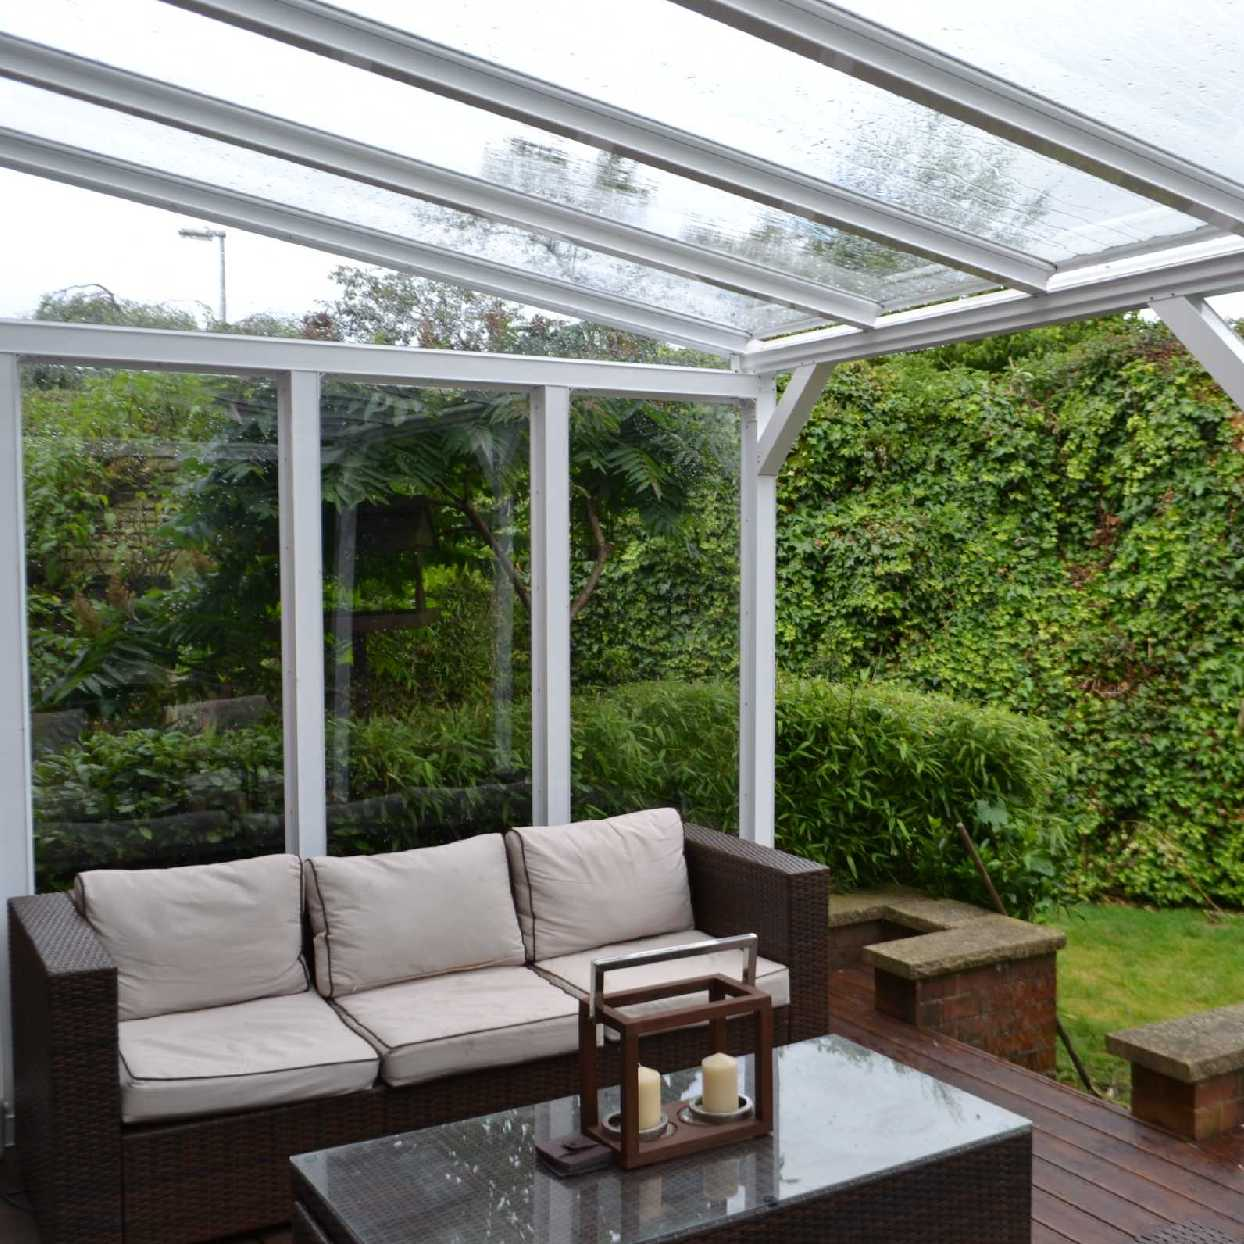 Great selection of Omega Smart White Lean-To Canopy with 16mm Polycarbonate Glazing - 4.2m (W) x 2.0m (P), (3) Supporting Posts